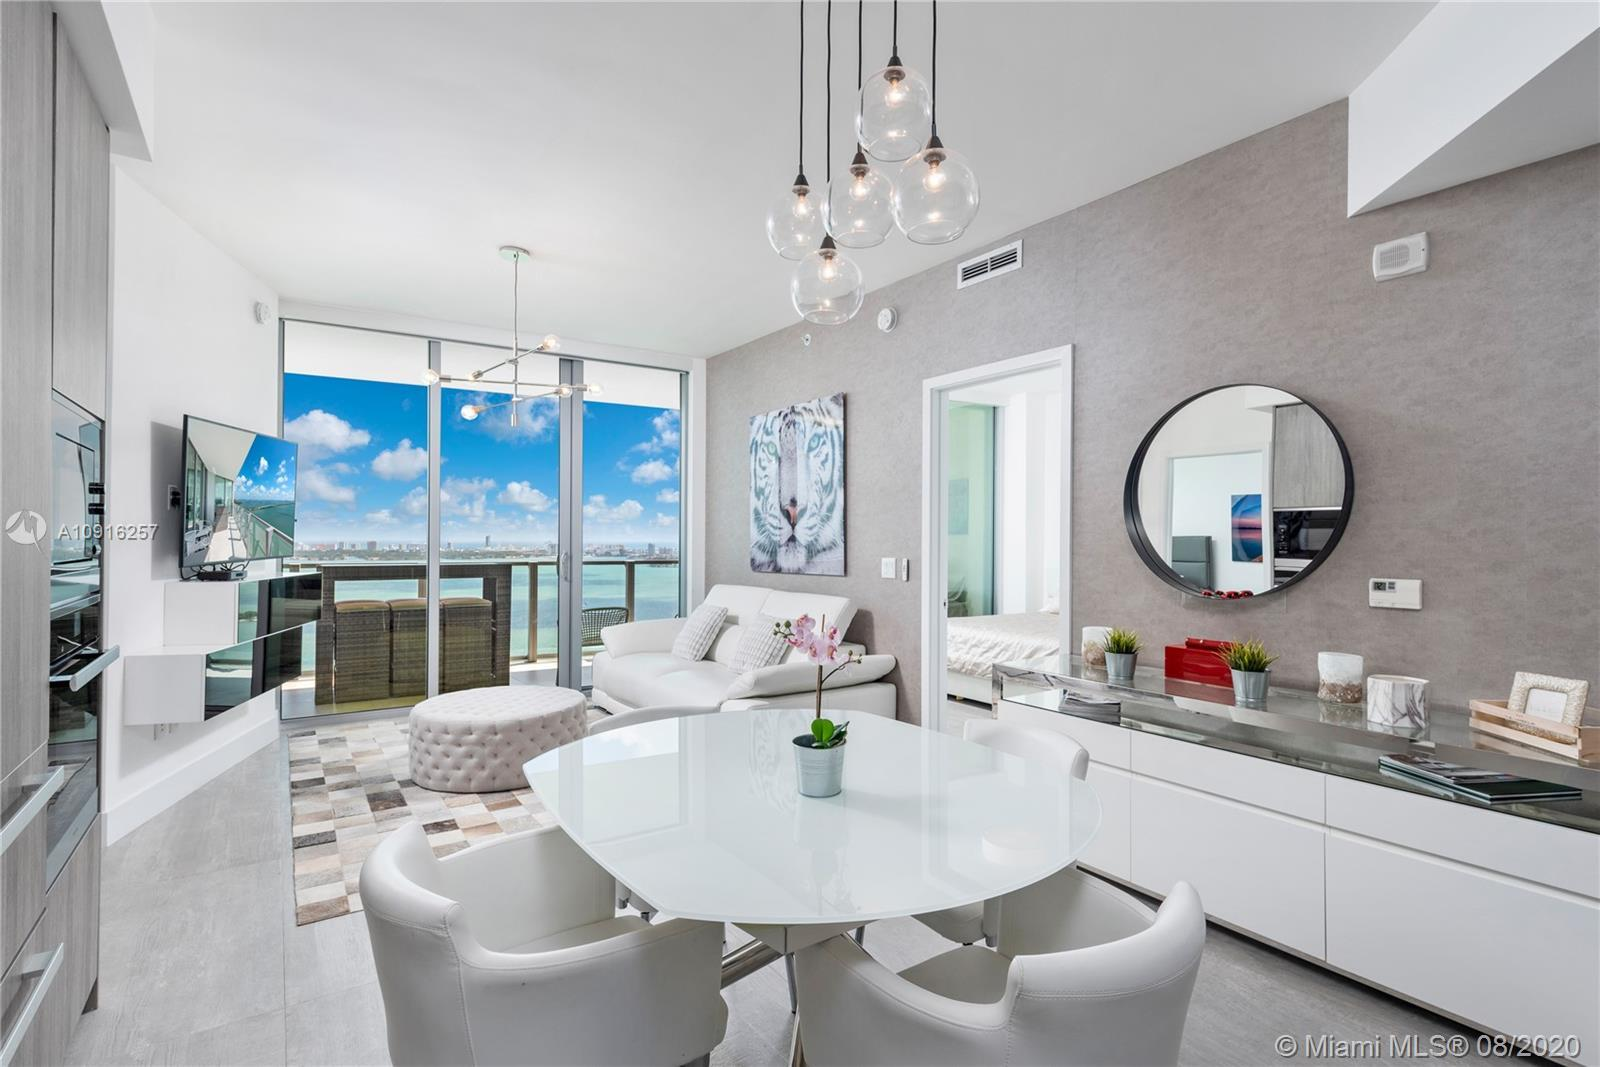 Stunning 3BR/ 3BA unit at the brand new Biscayne Beach Residences. Entertain in style across the 1,2